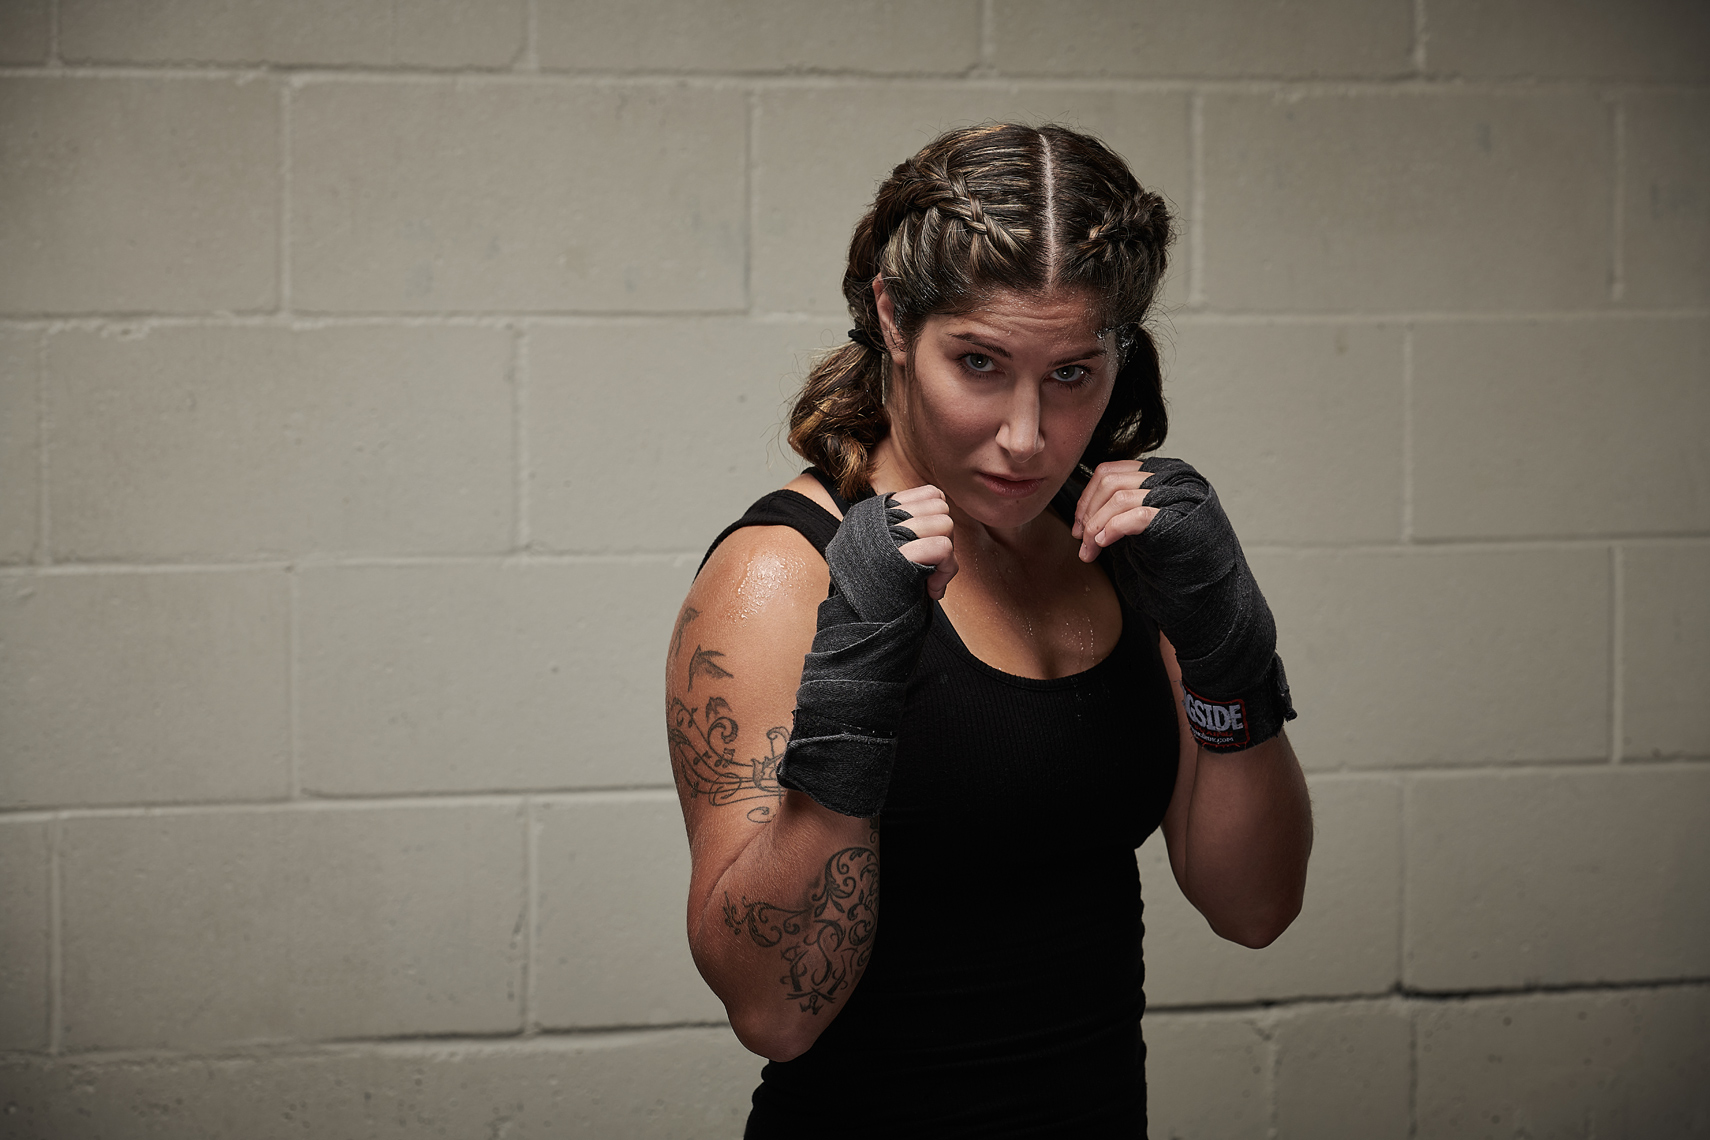 2017-Vancouver-SportsandFitness-Photographer-ErichSaide-Advertising-Reflex-Supplements-Women-Boxing